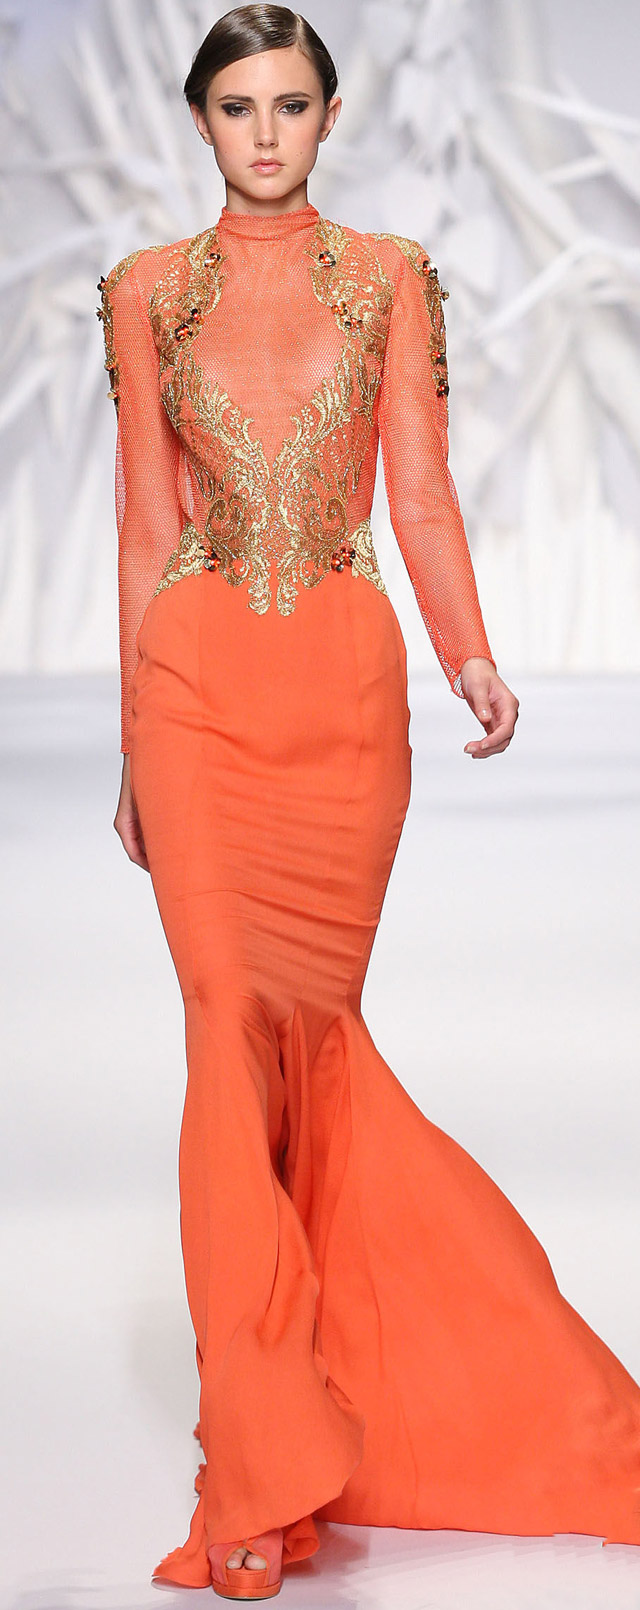 Abed Mahfouz Haute Couture Fall-Winter 2013-2014 (13)